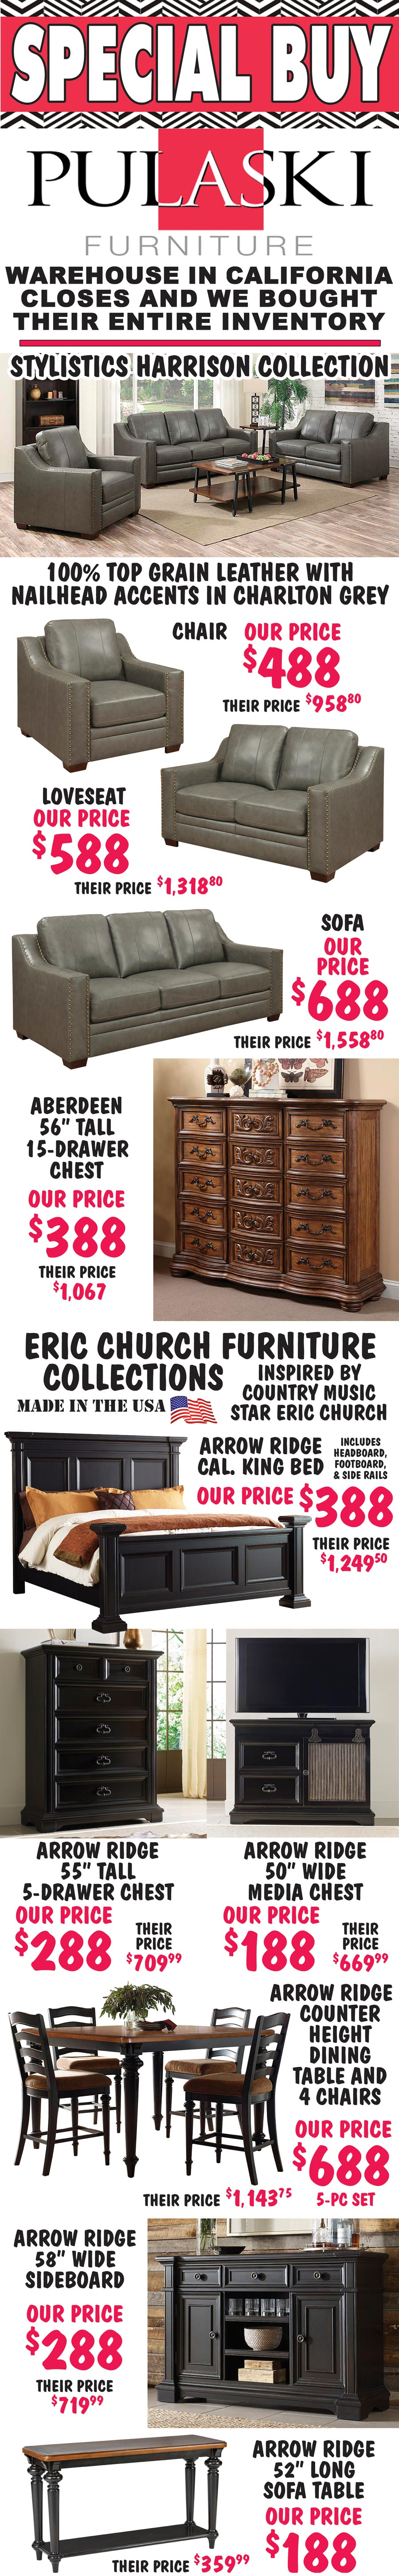 Eric Church Furniture : church, furniture, Leather, Sofas,, Loveseats,, Chairs, Church, Bedroom, Dining, Furniture